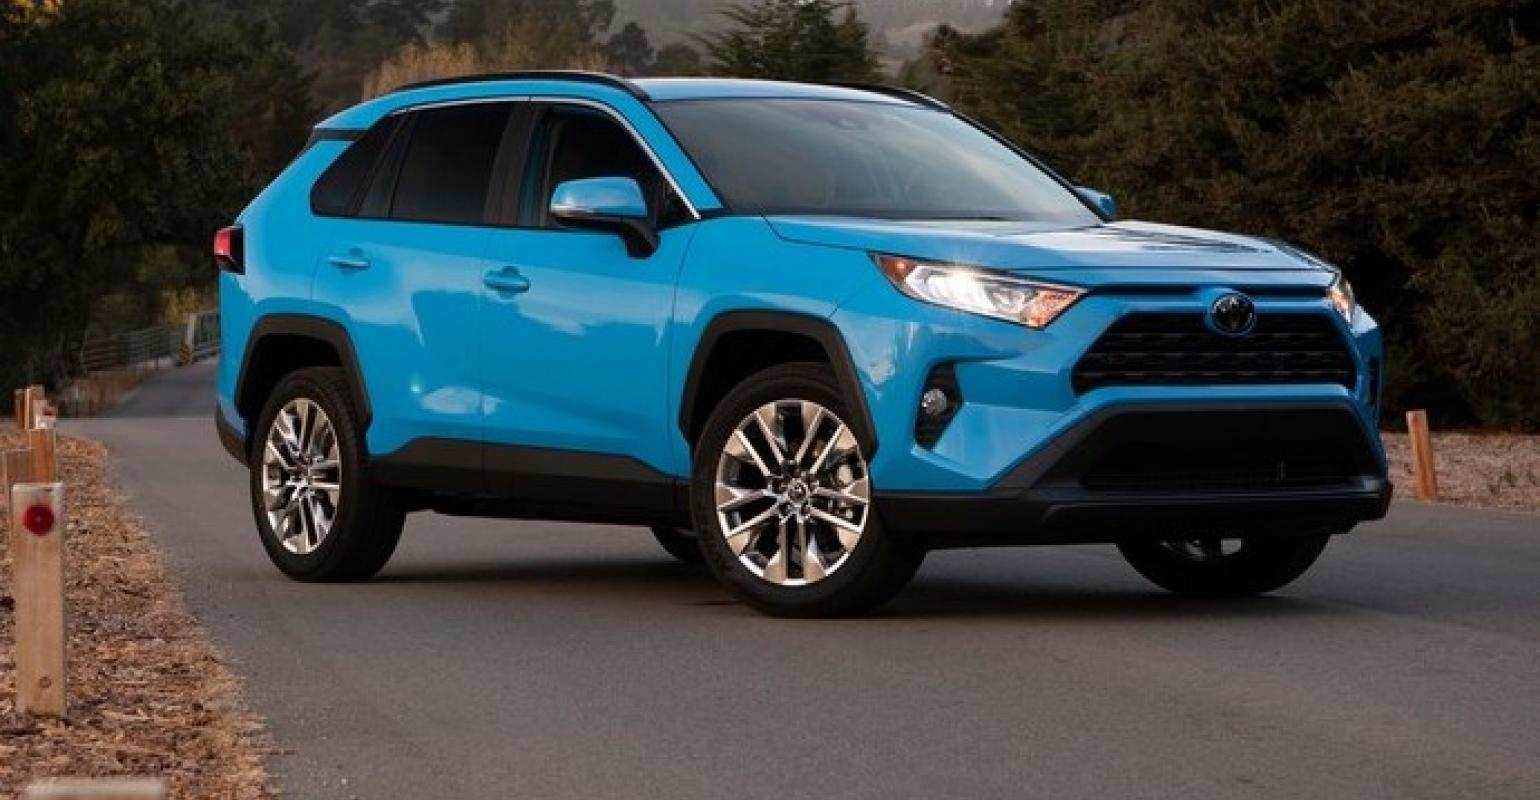 22 New 2019 Toyota Rav4 Hybrid Reviews with 2019 Toyota Rav4 Hybrid